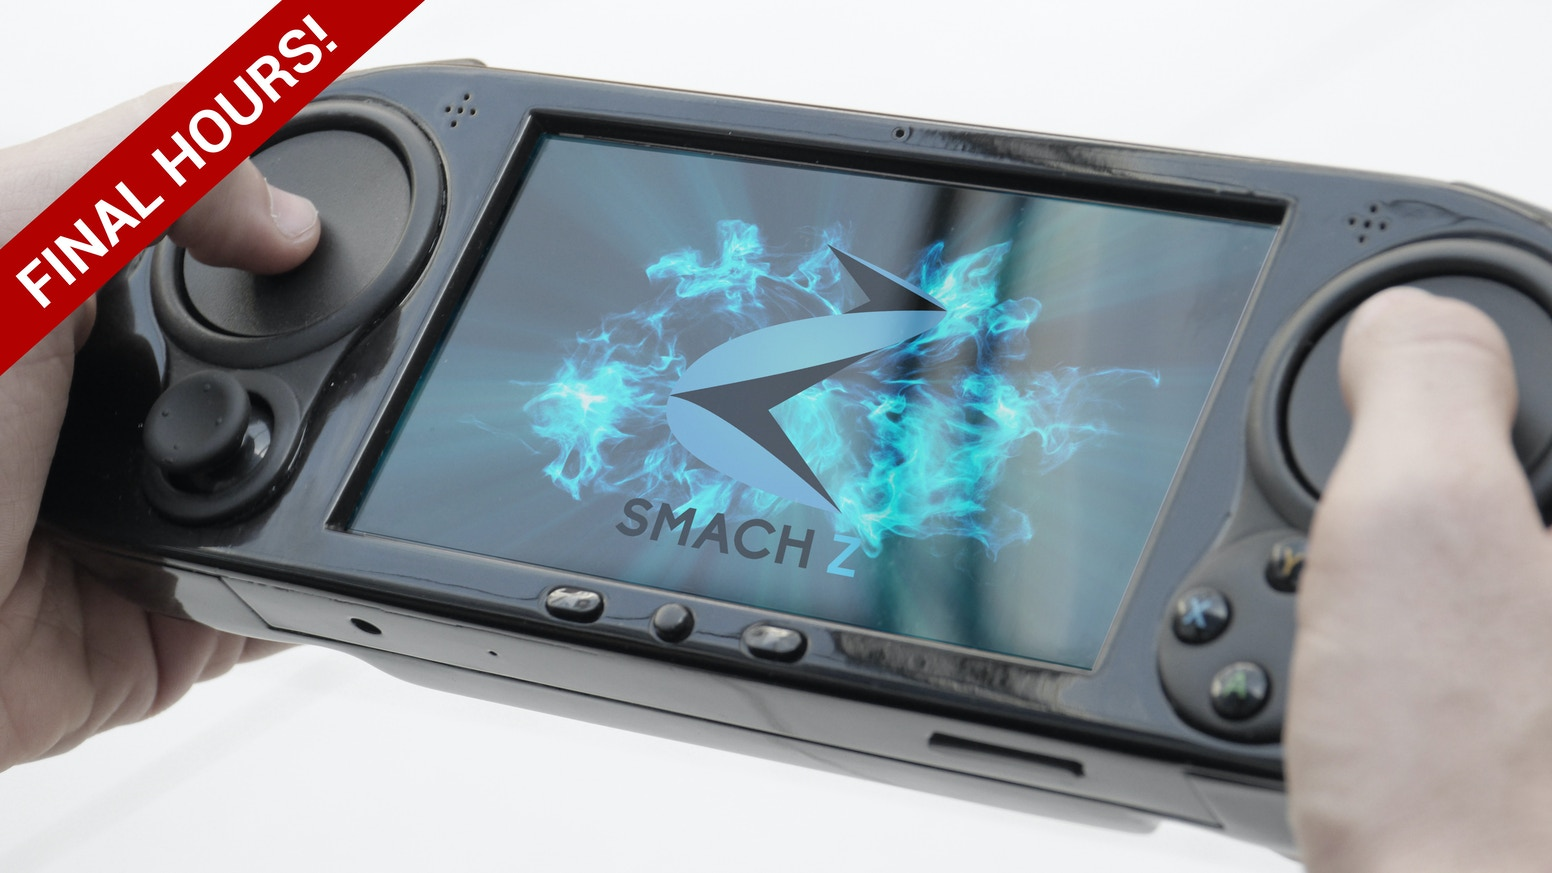 Smach Z The Handheld Gaming Pc By Team Kickstarter Electric Circuit Board Processor Tshirt Spreadshirt Is A With Haptic Touchpad Controls Thats Powerful Enough To Play Any